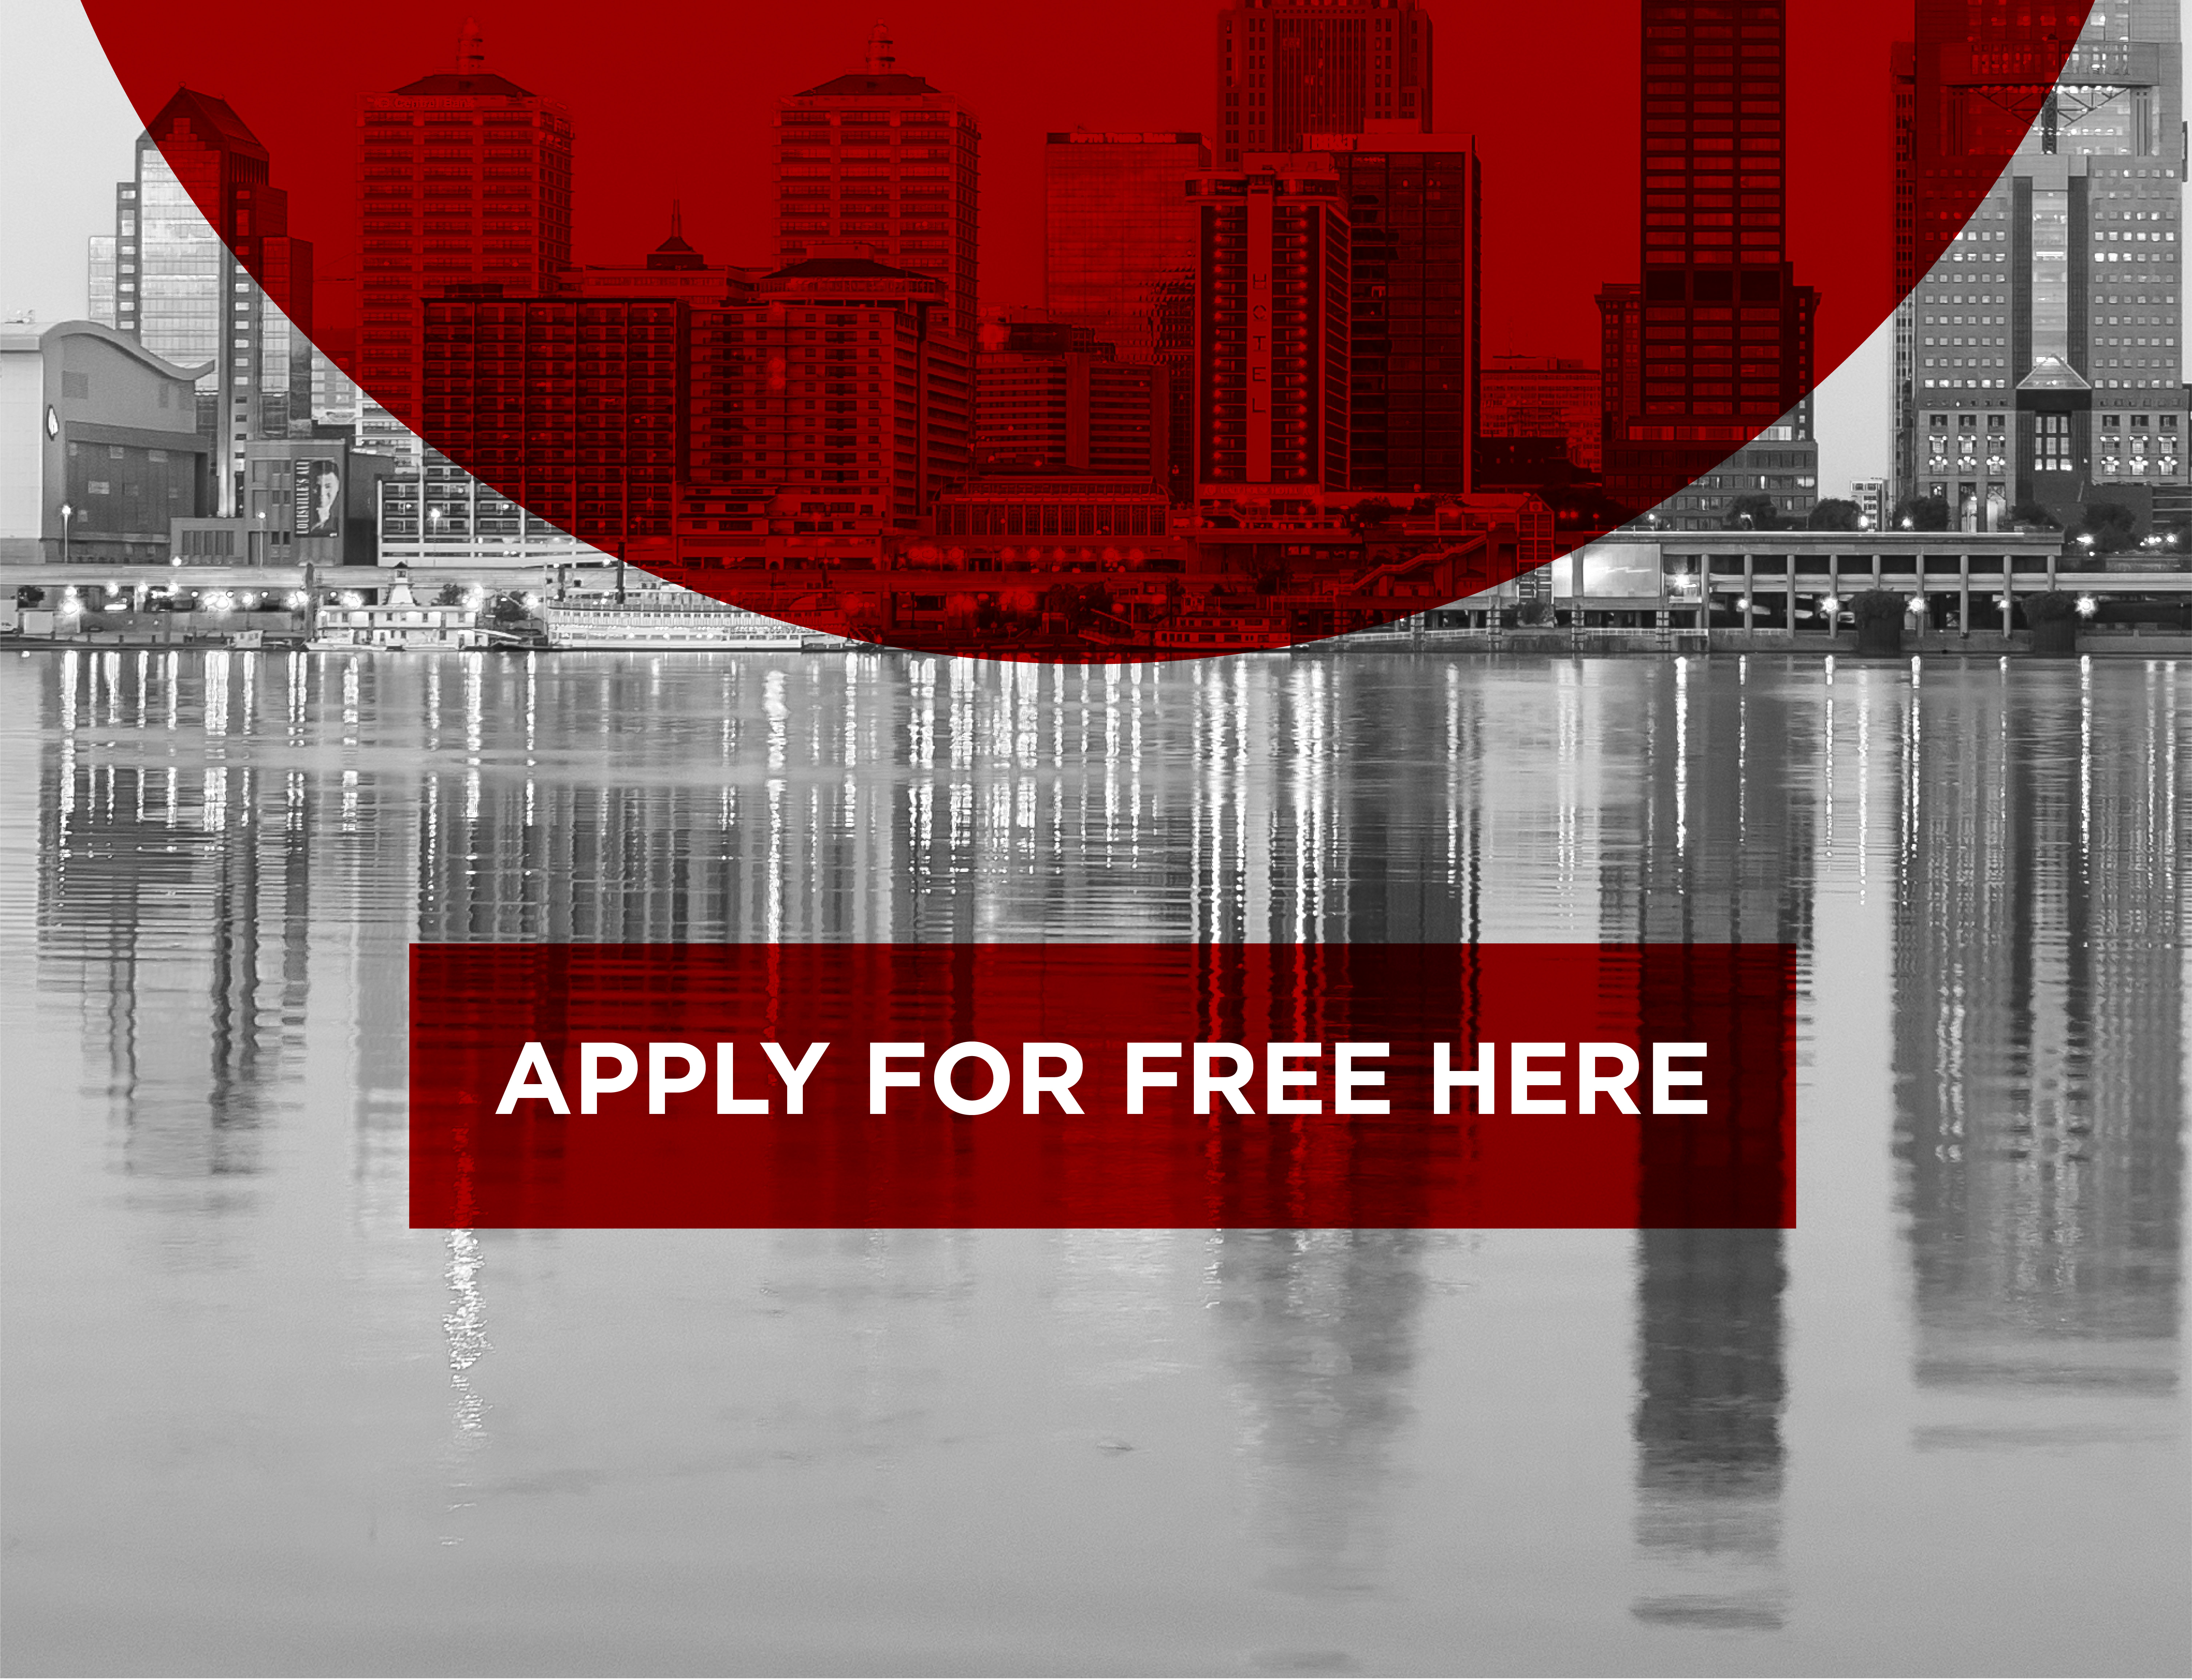 Image: Apply for Free Here